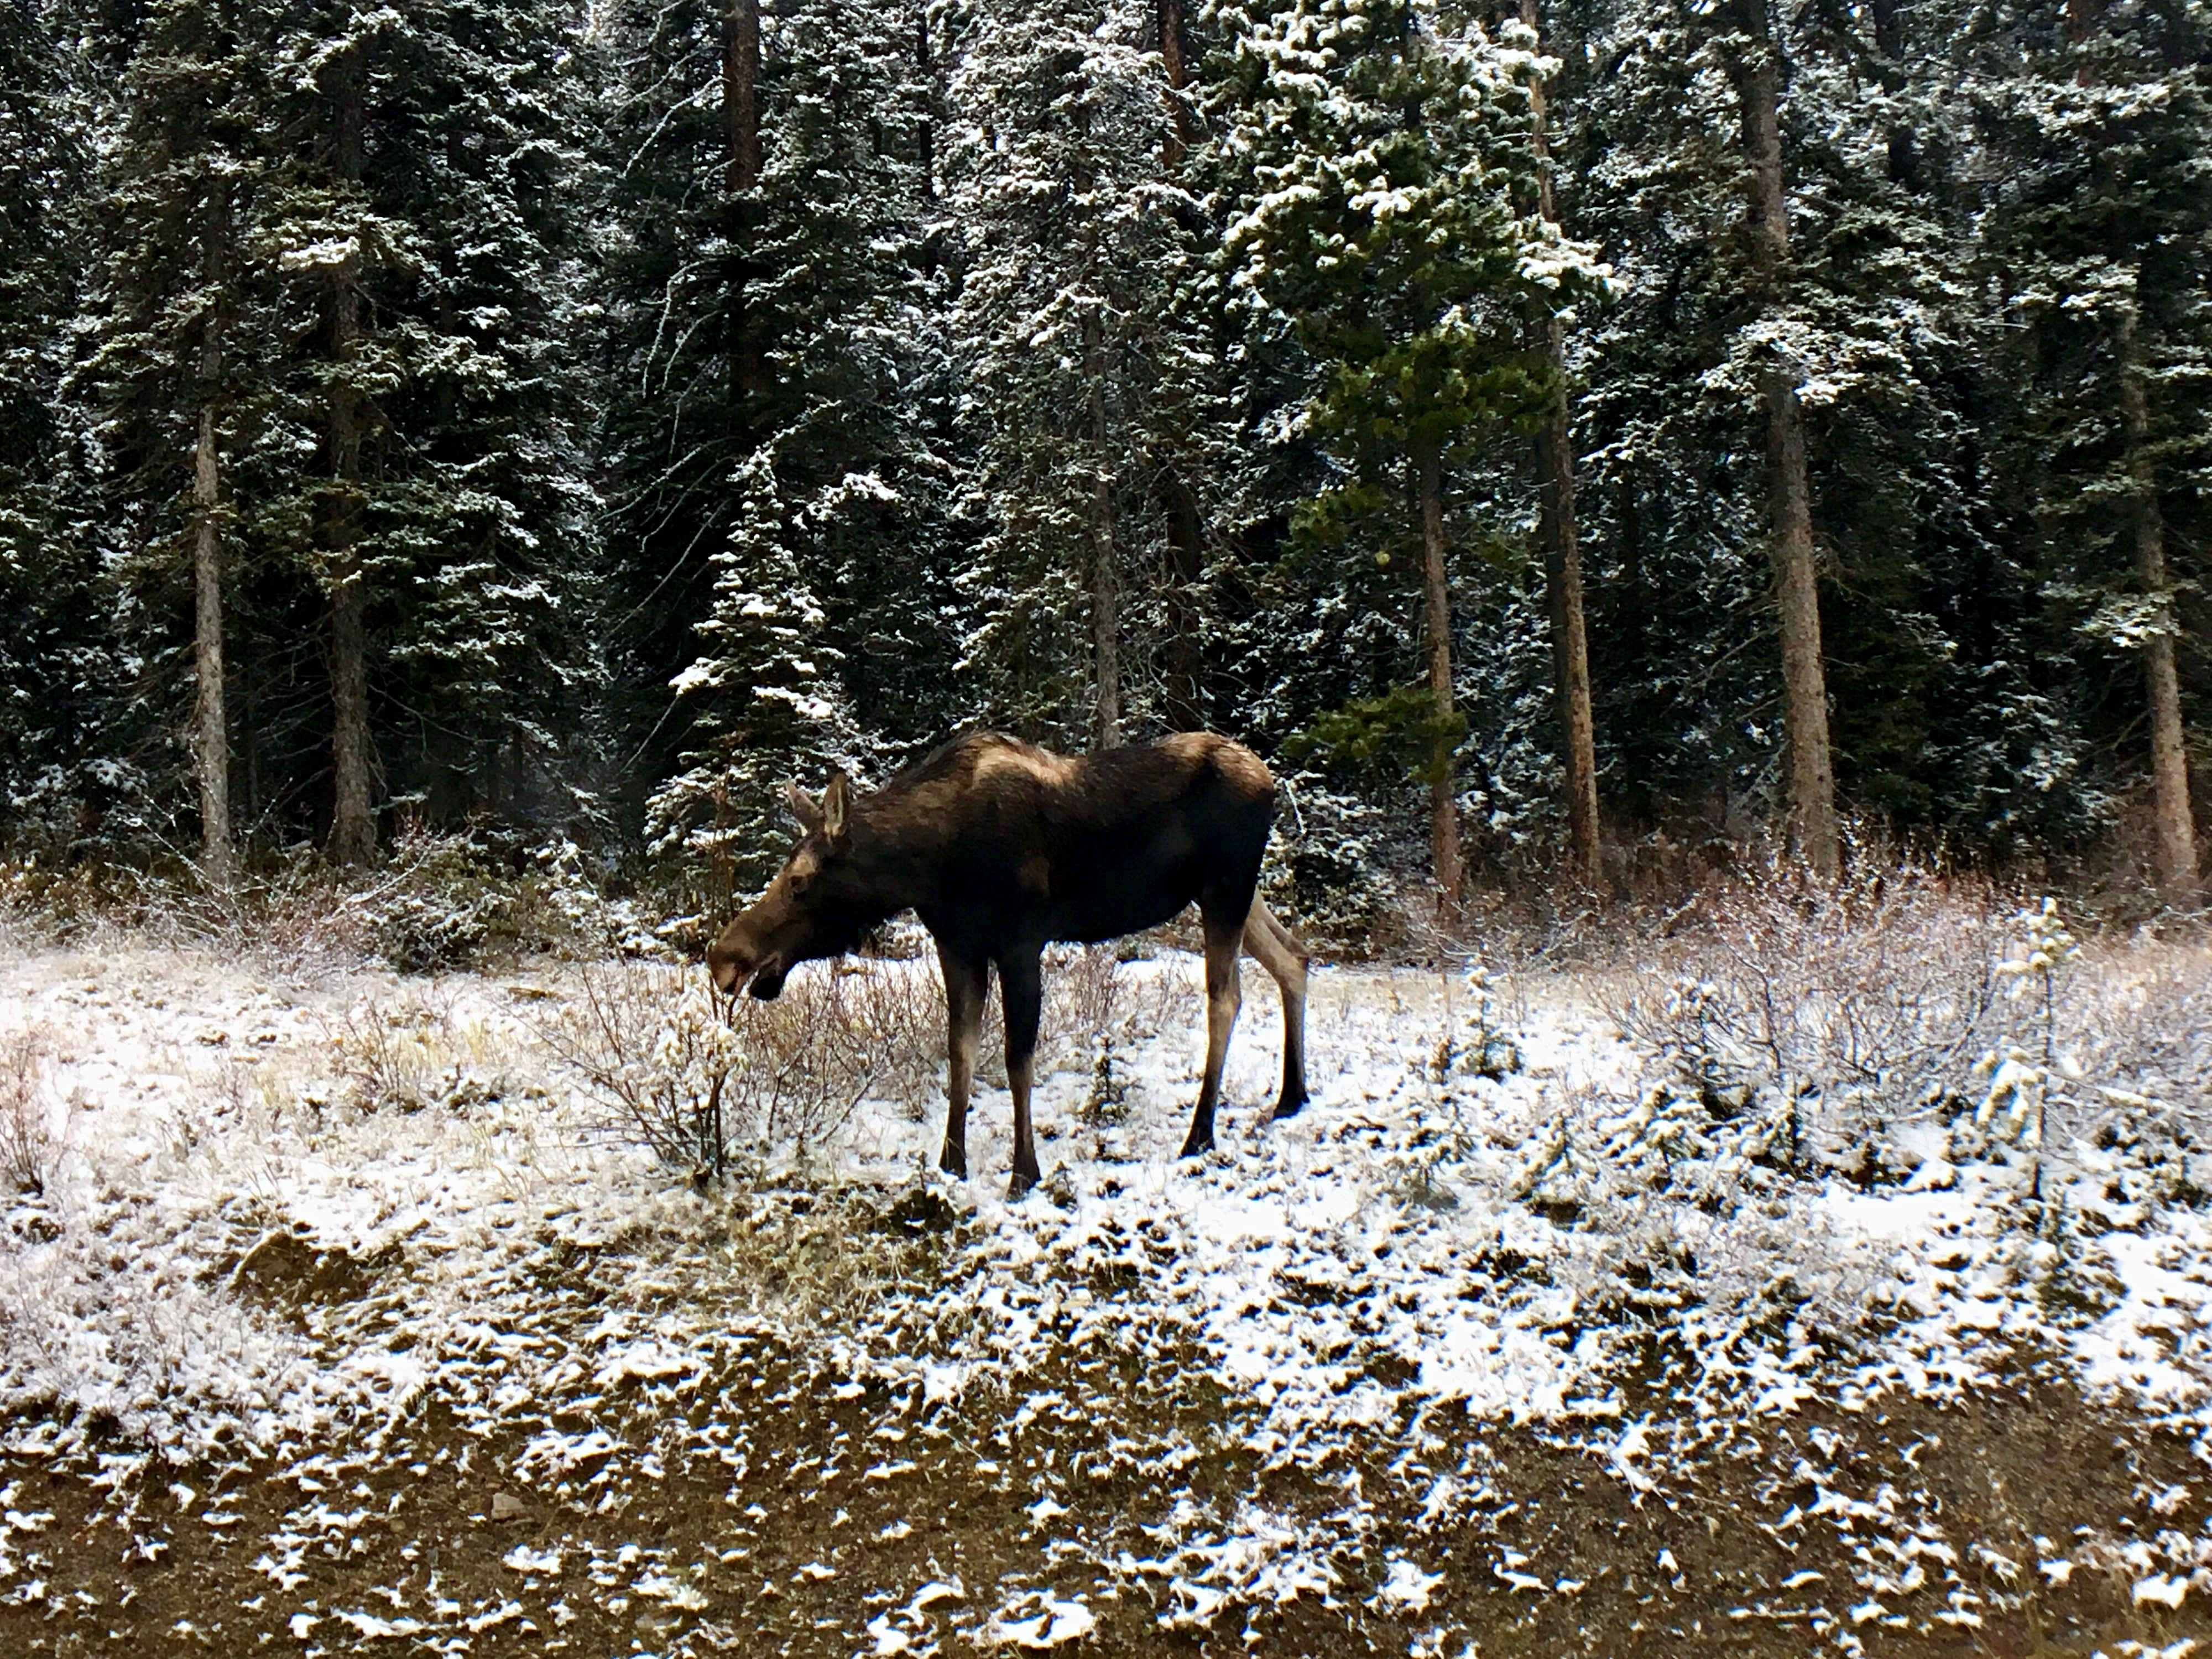 Moose •7 Reasons Why You NEED to Visit Banff National Park | The Wanderful Me